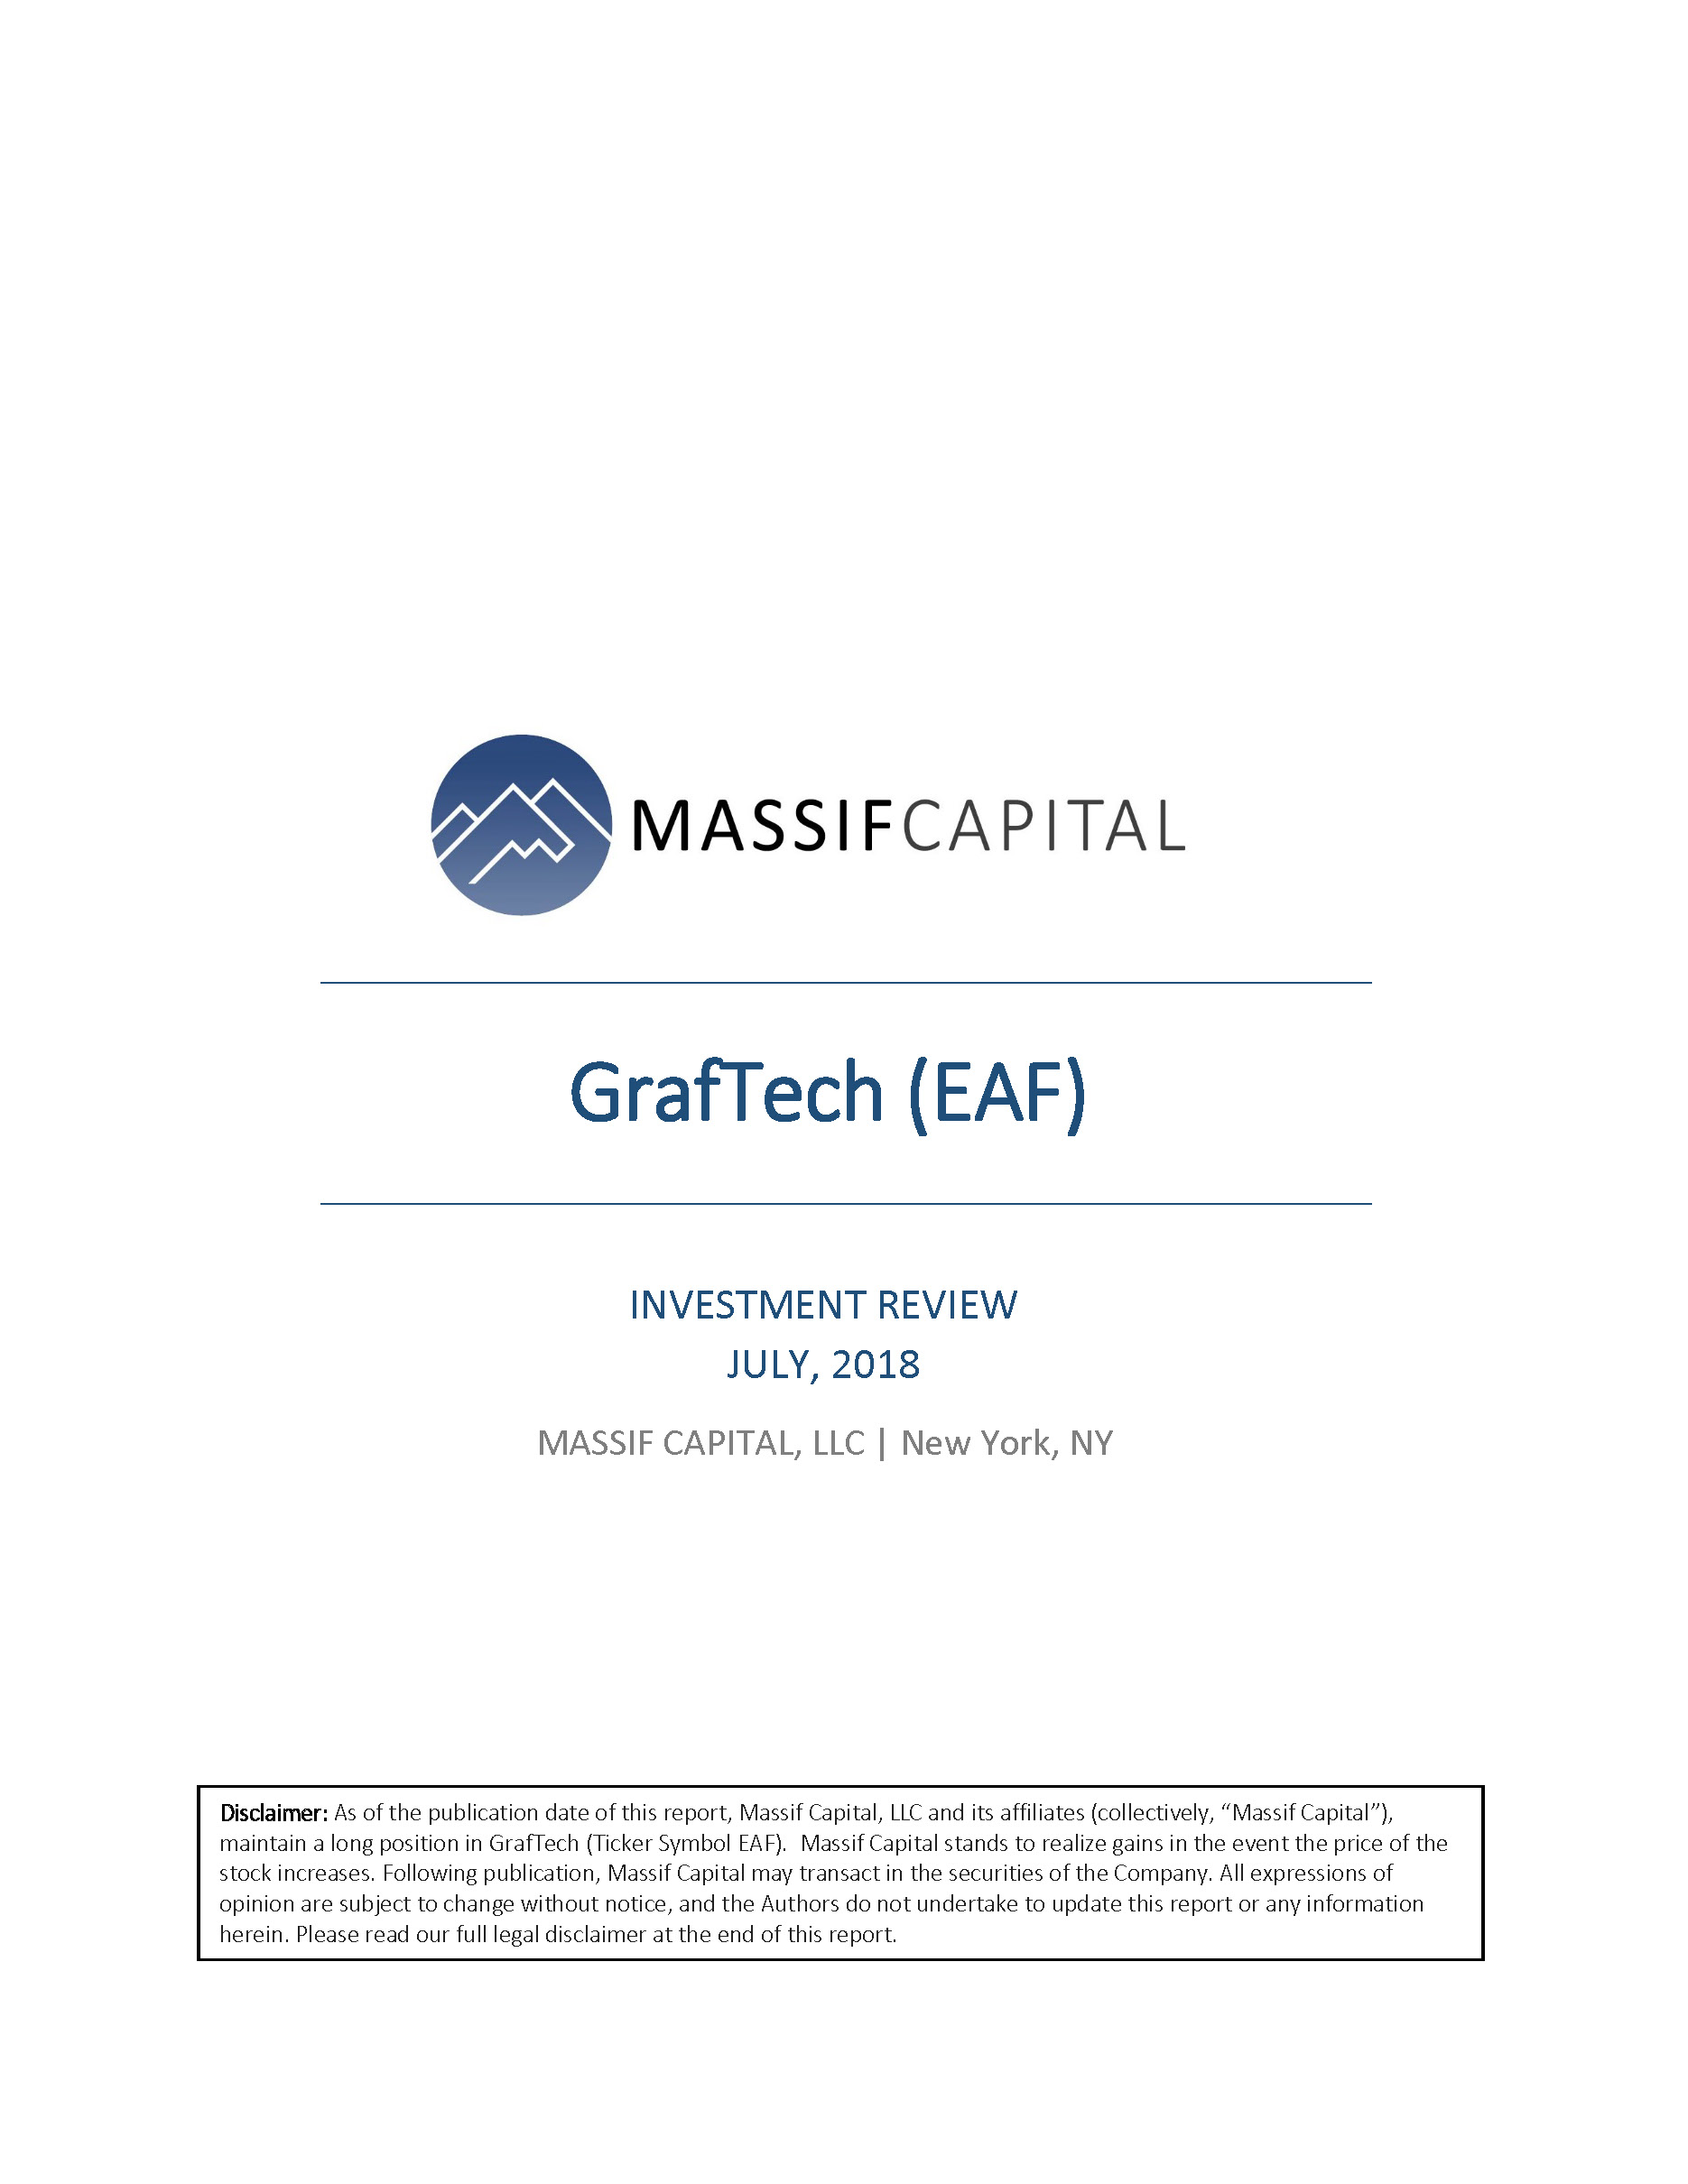 Intiating Report - EAF - July 2018 - Massif Capital_Page_01.jpg